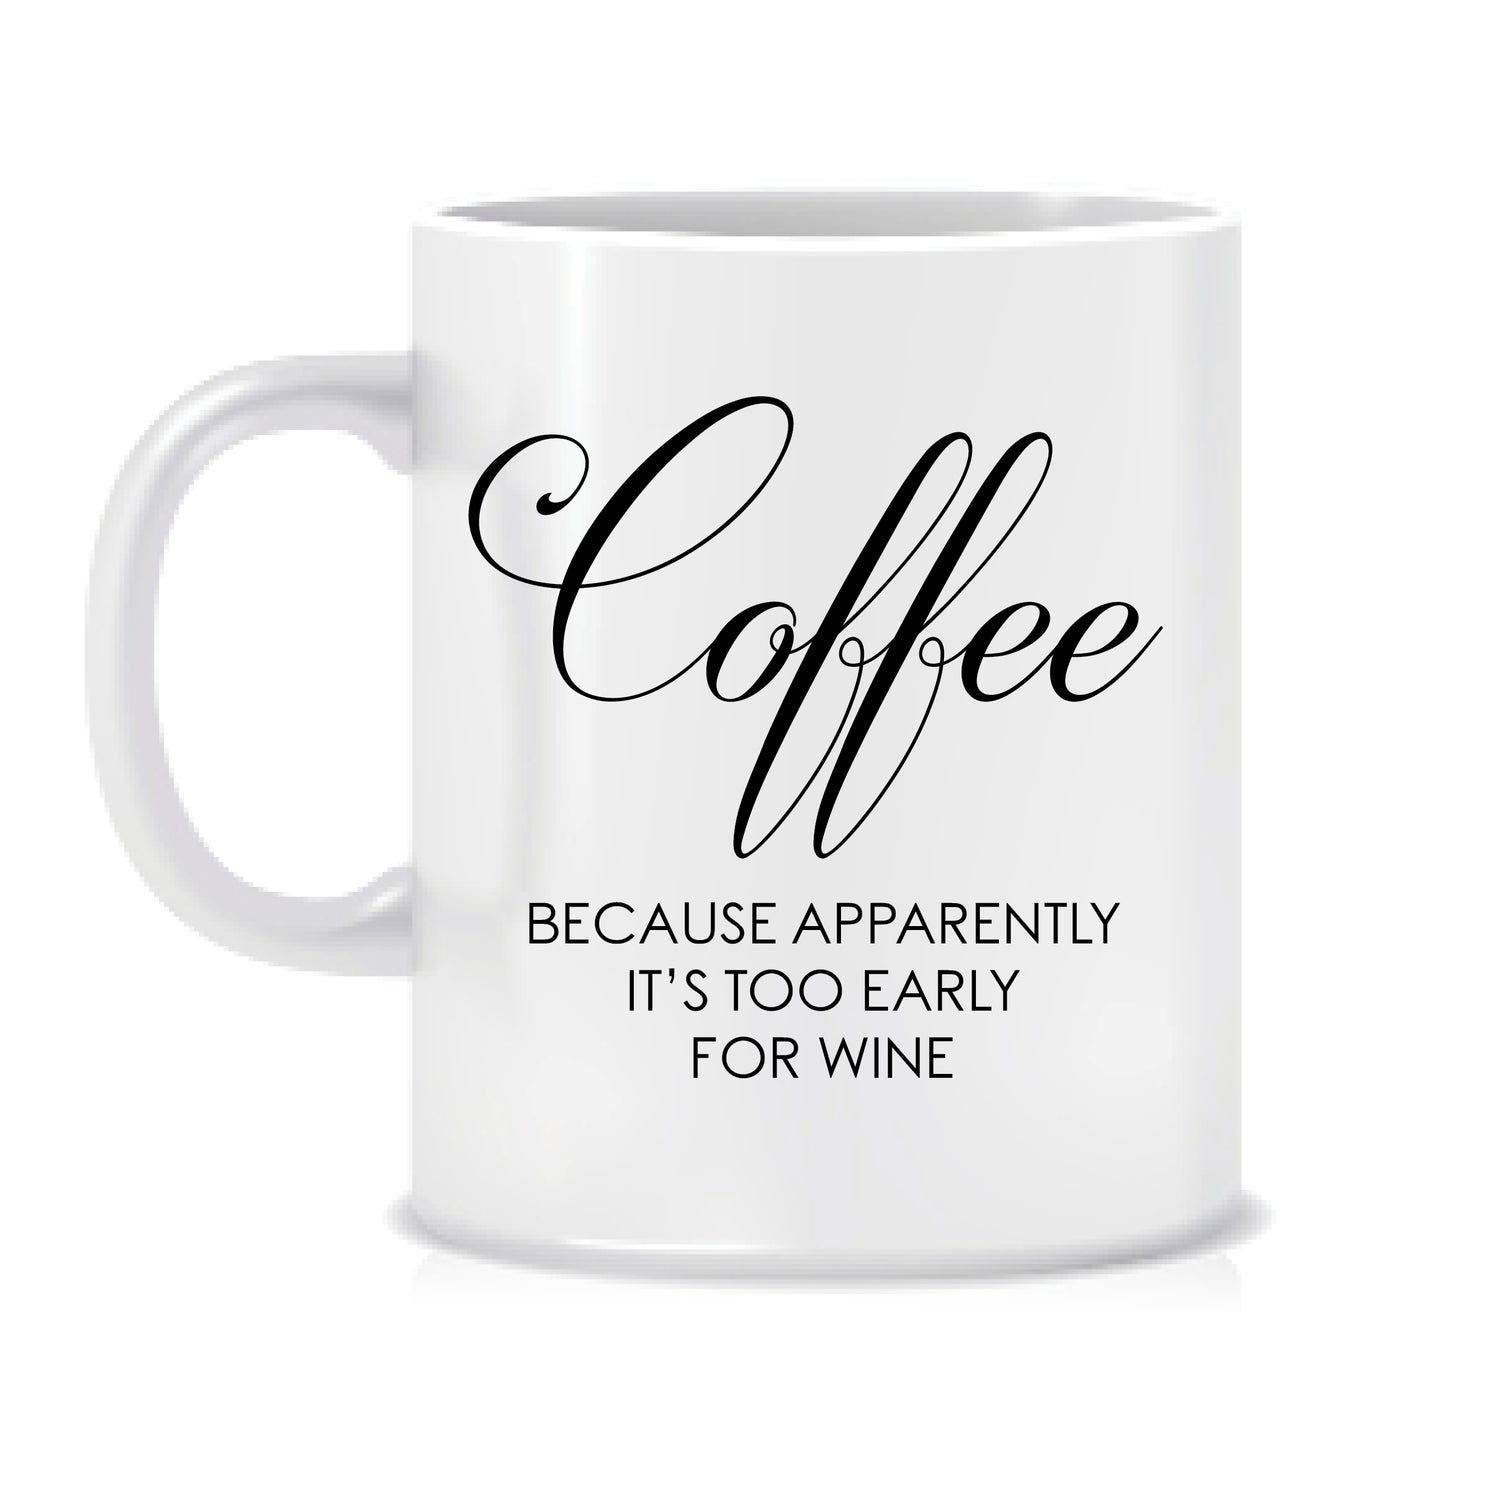 Image of Coffee because apparently it's too early for wine